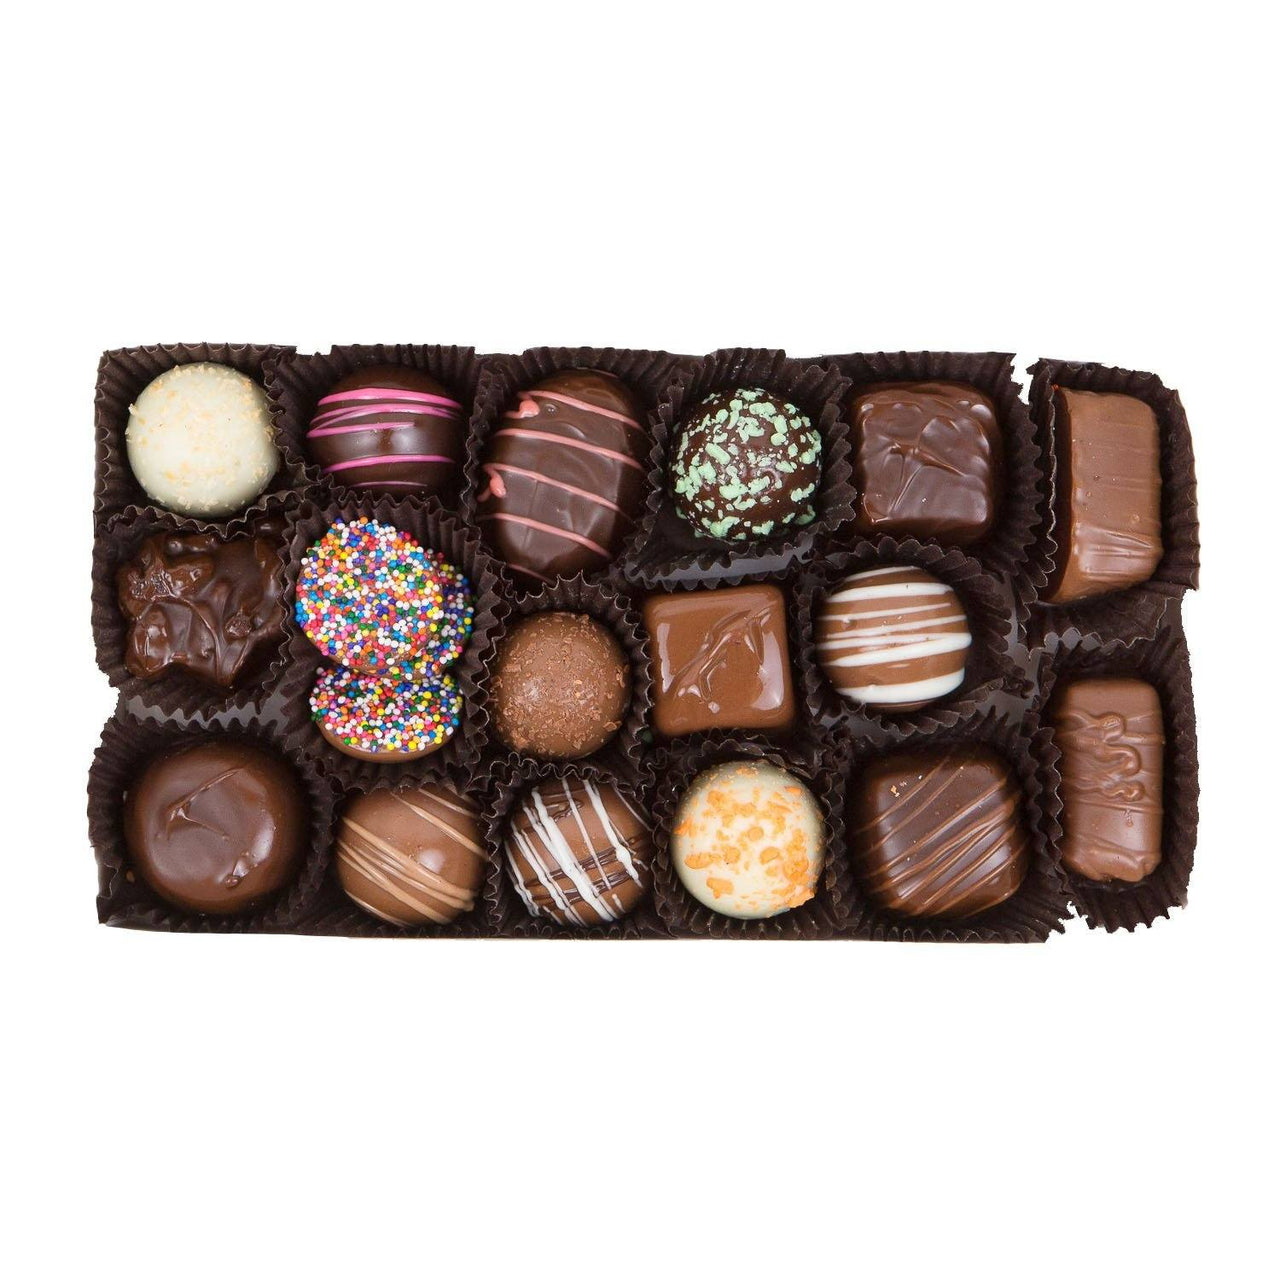 Unique Christmas Gifts for Mom  - Chocolate Assortment Gift Box - Jackie's Chocolate